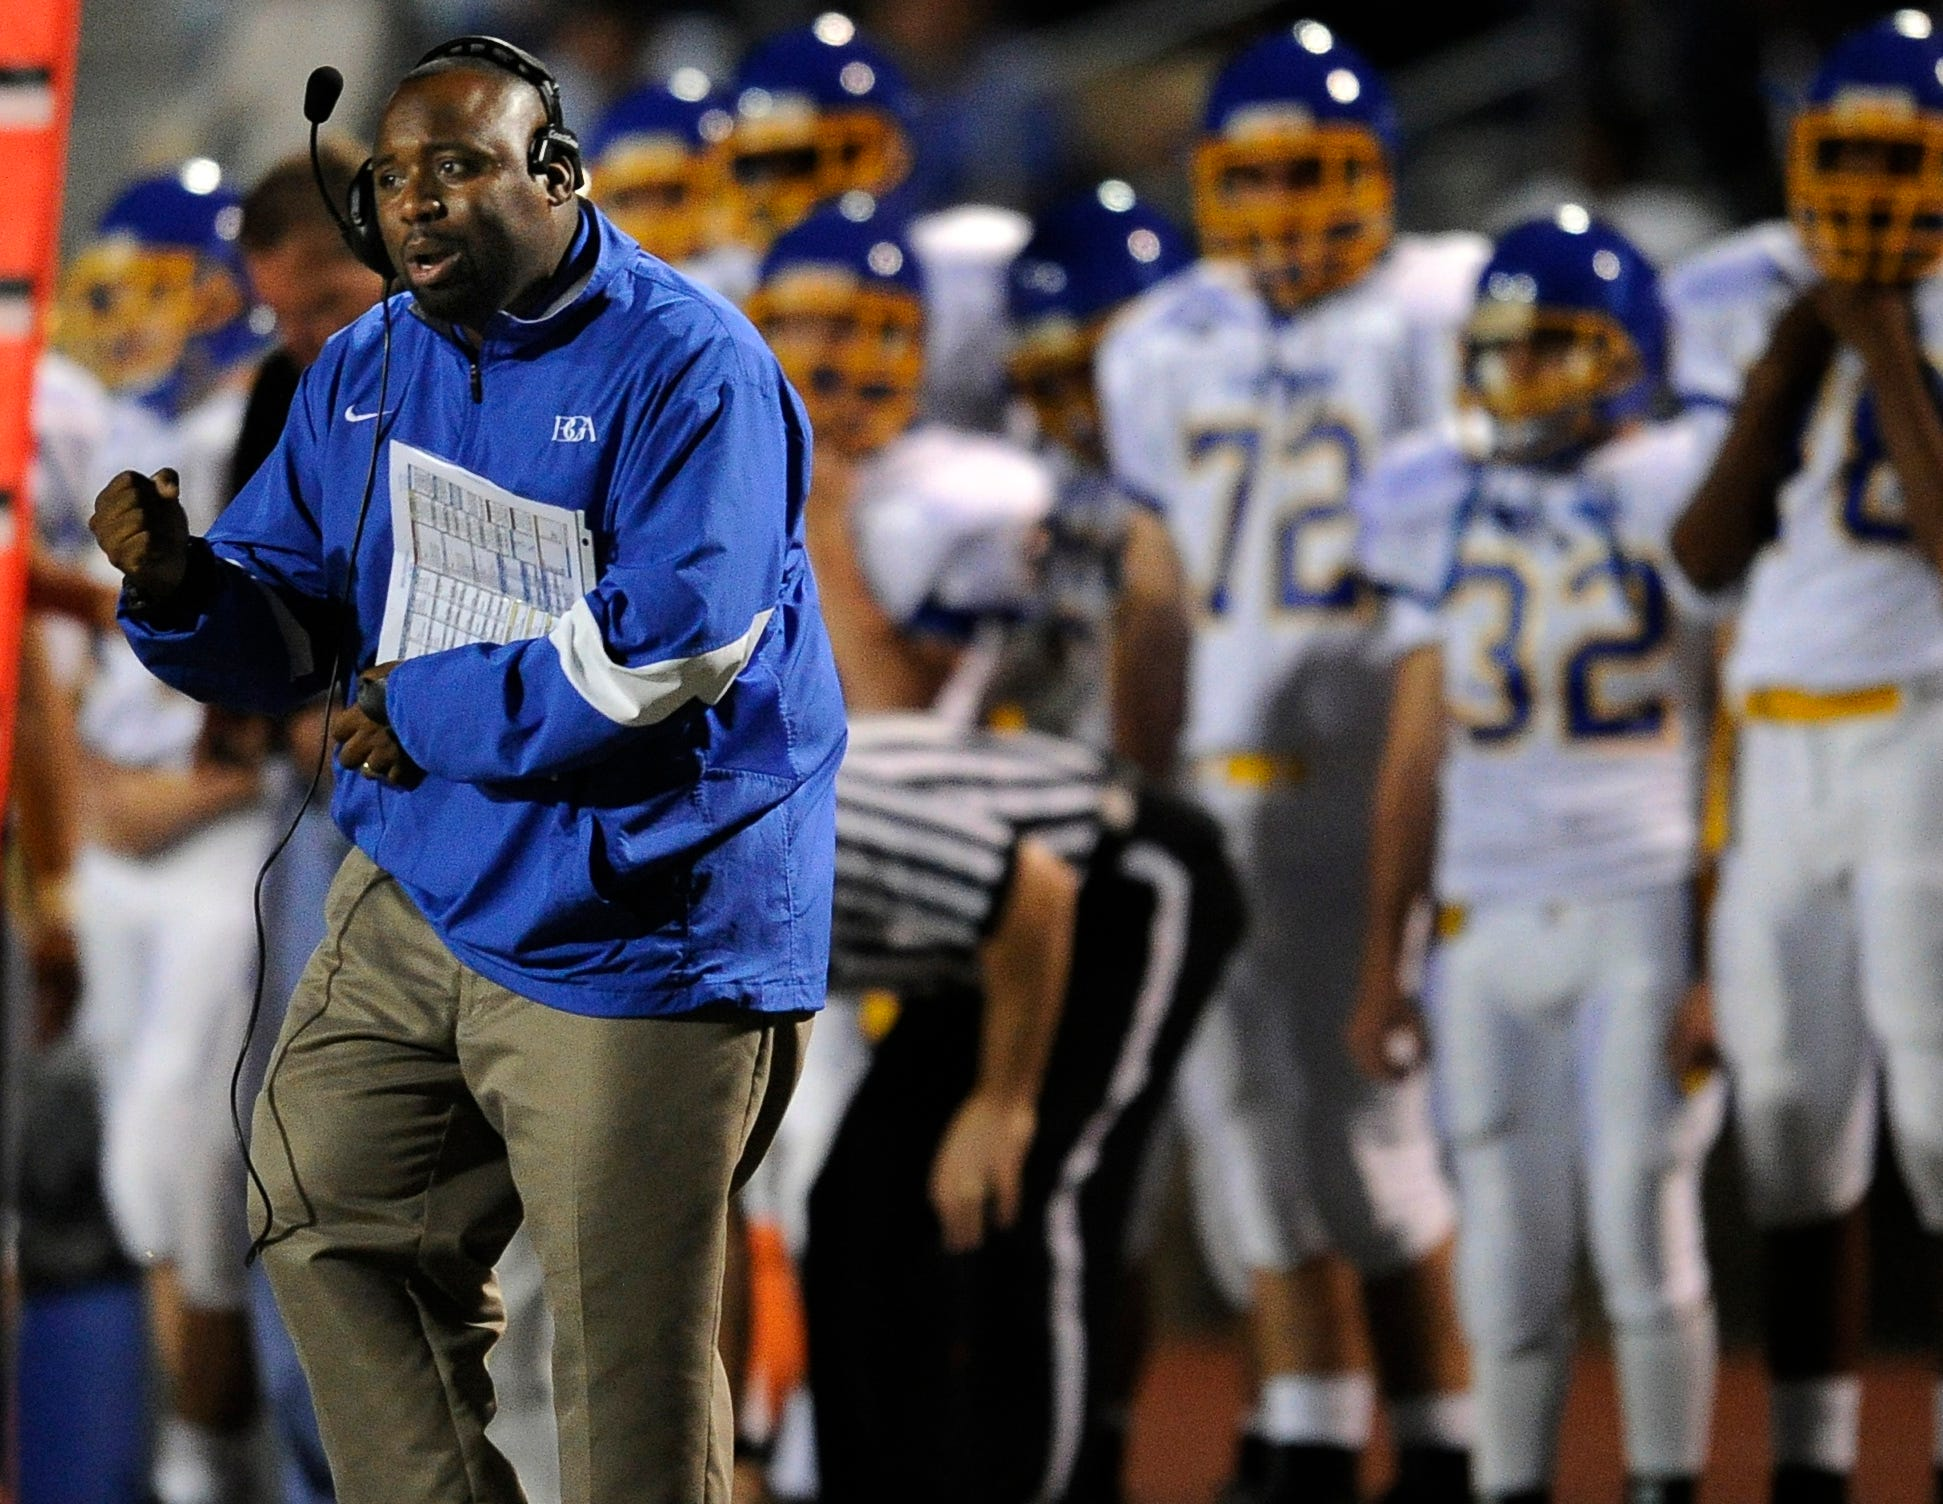 Head Coach Roc Batten will try to lead his Battle Ground Academy squad to a Division II-A state title.